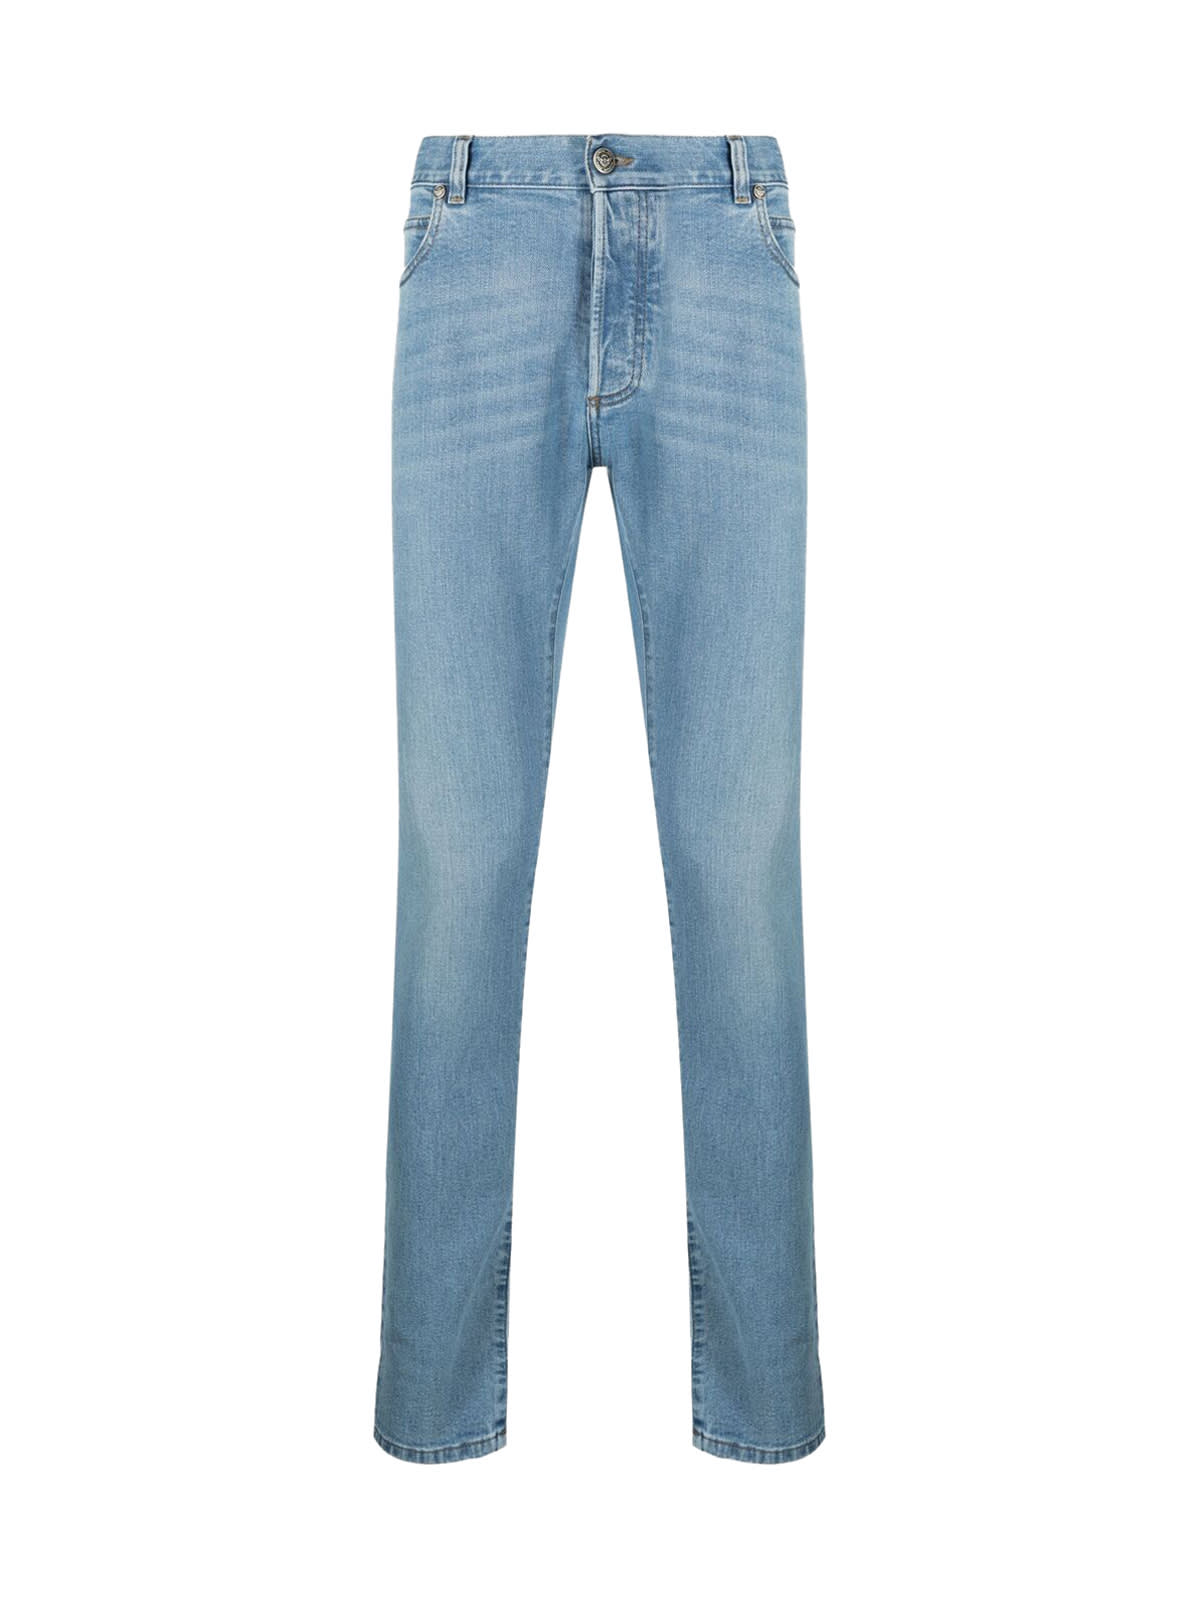 Balmain EMBROIDERED SLIM JEANS-LIGHT BLUE